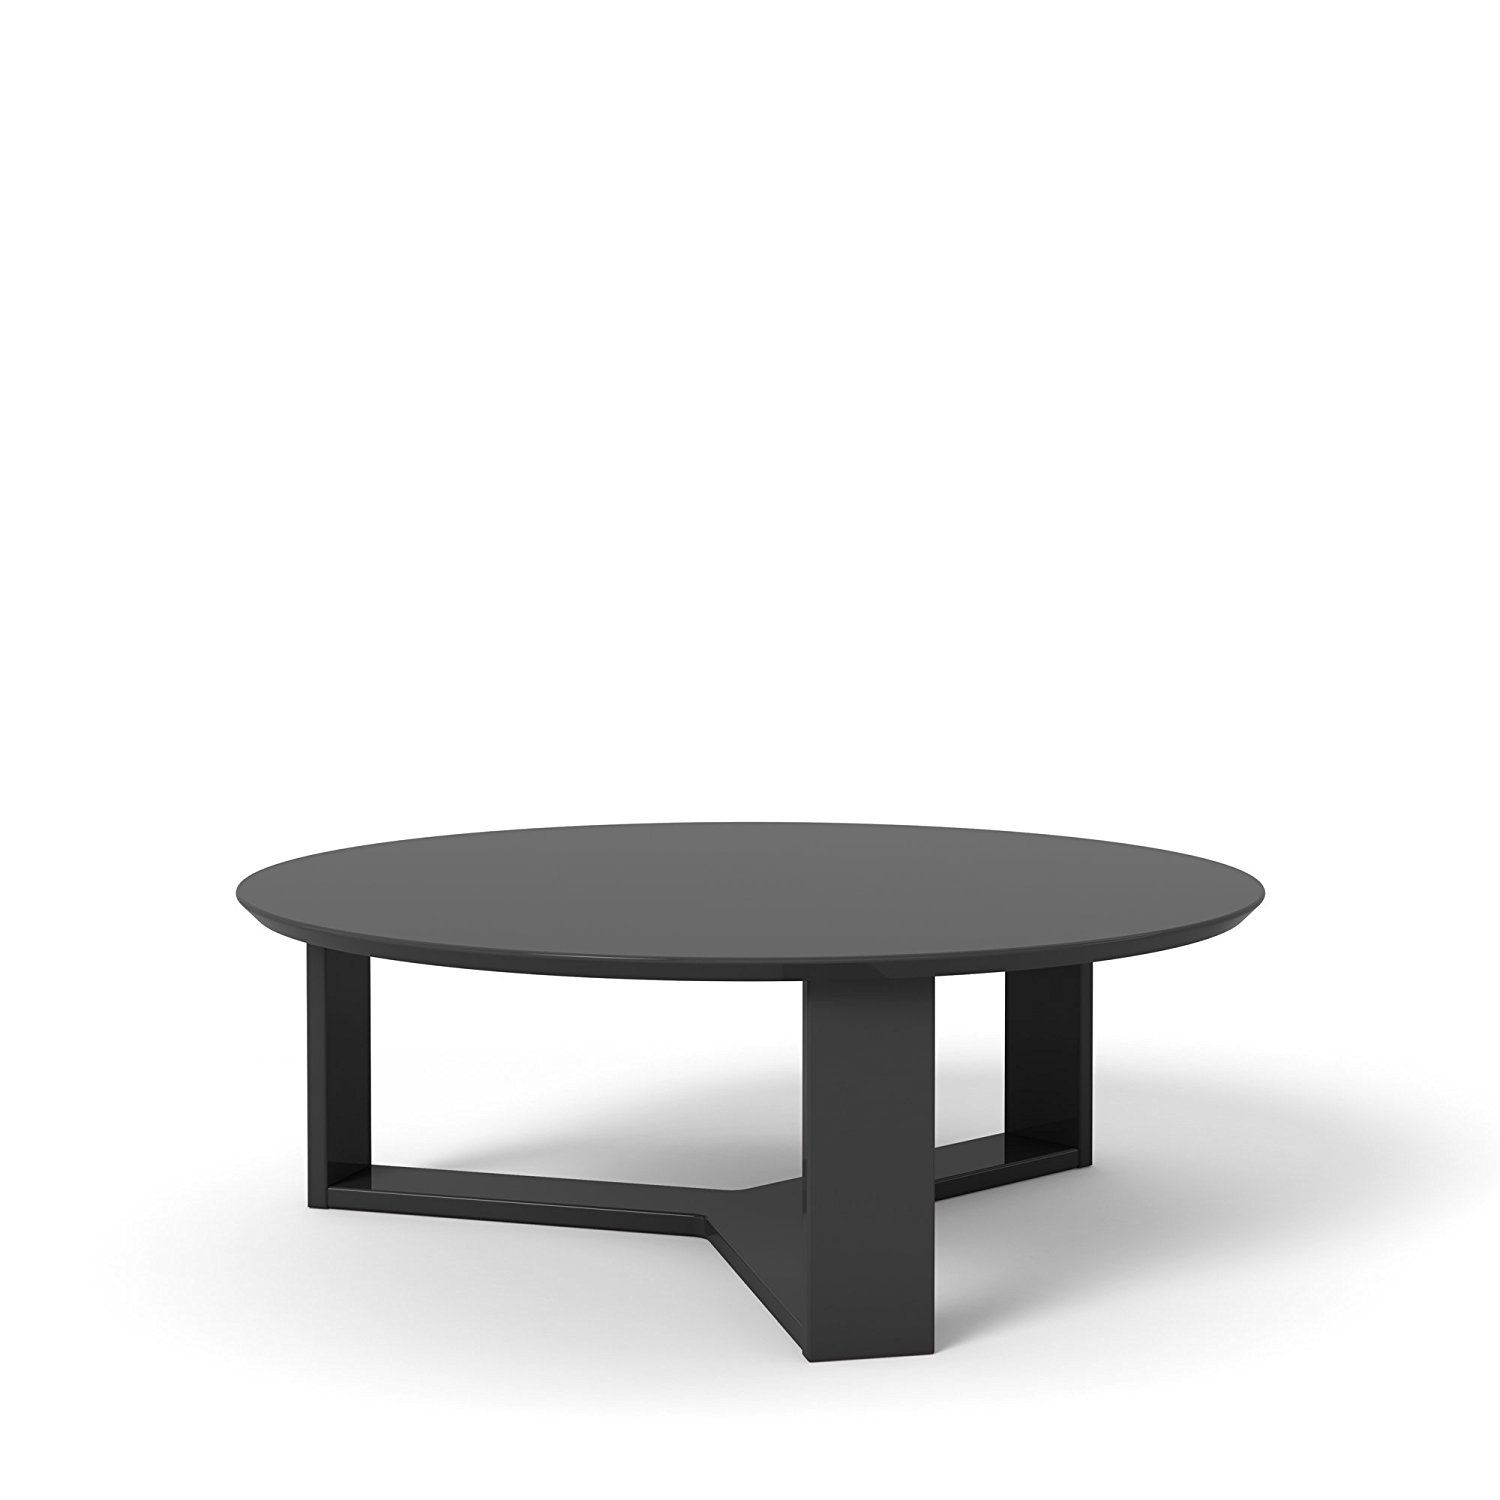 Pin by Five Stars on Round Coffee Tables